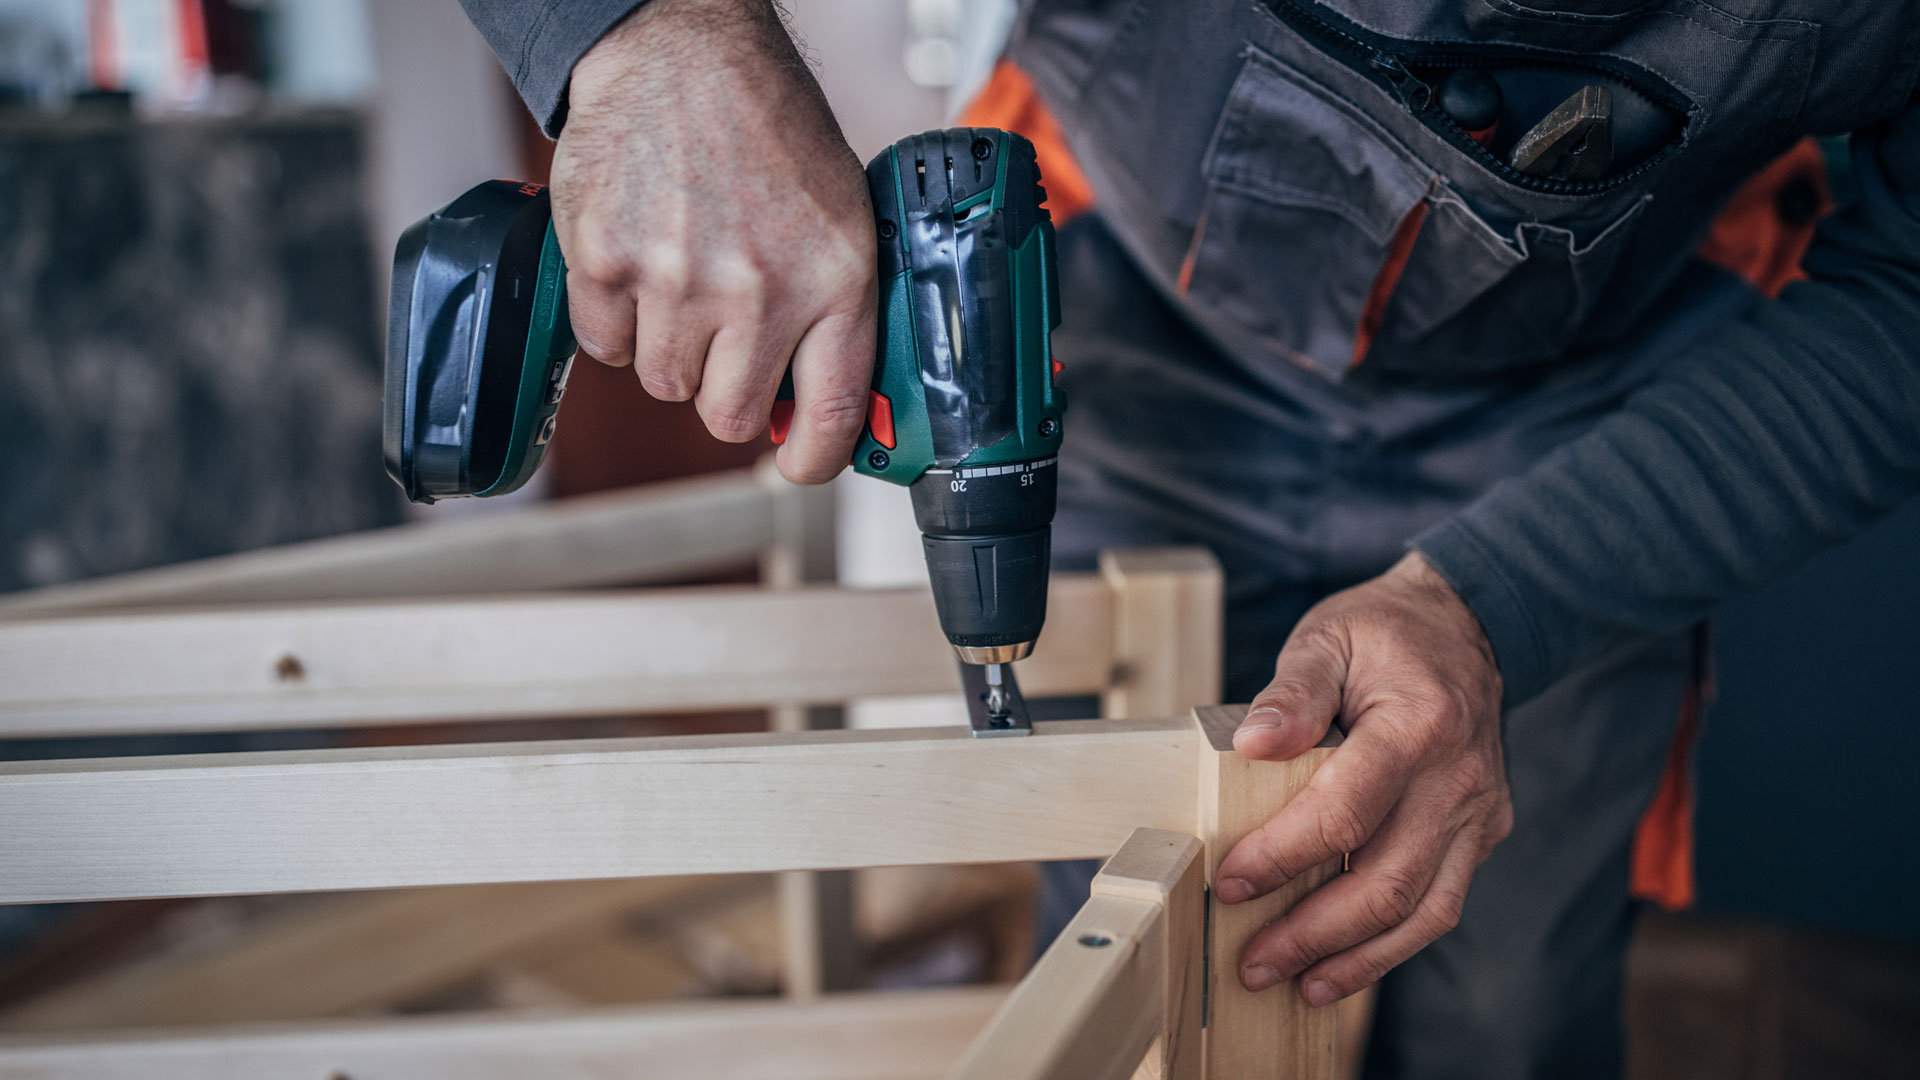 Best cordless drills 2020: Top cordless drills and hammer drills for DIY